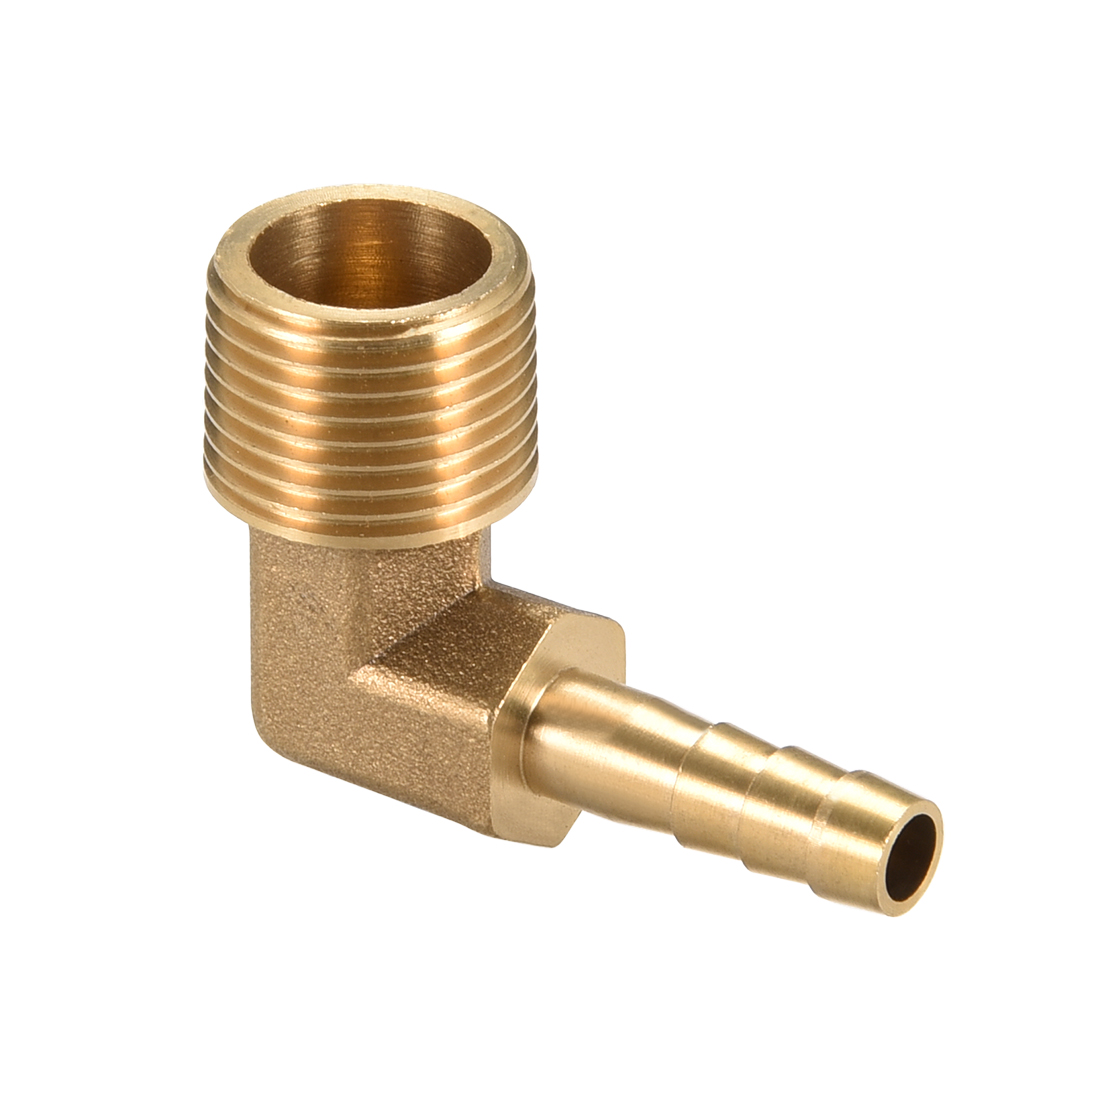 "Brass Barb Hose Fitting 90 Degree Elbow 6mm Barbed x 3/8"" G Male Pipe"